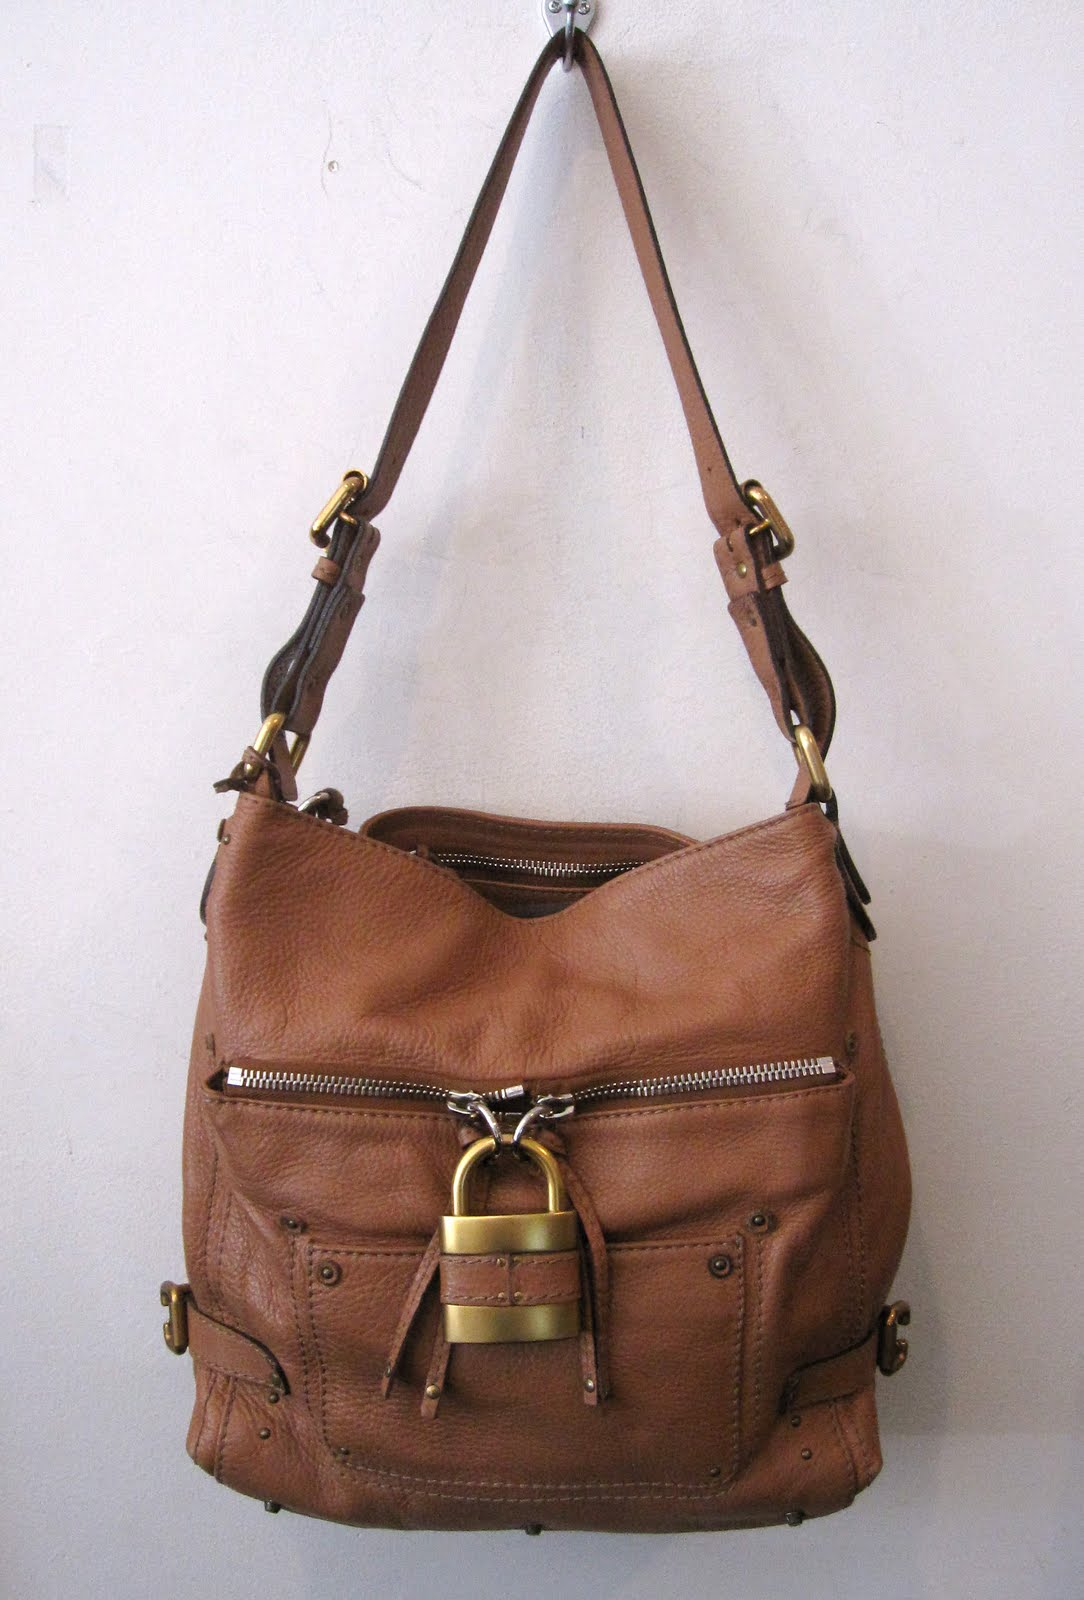 see by chloe bags shop online - Chloe leather handbags front : guess shirts for men